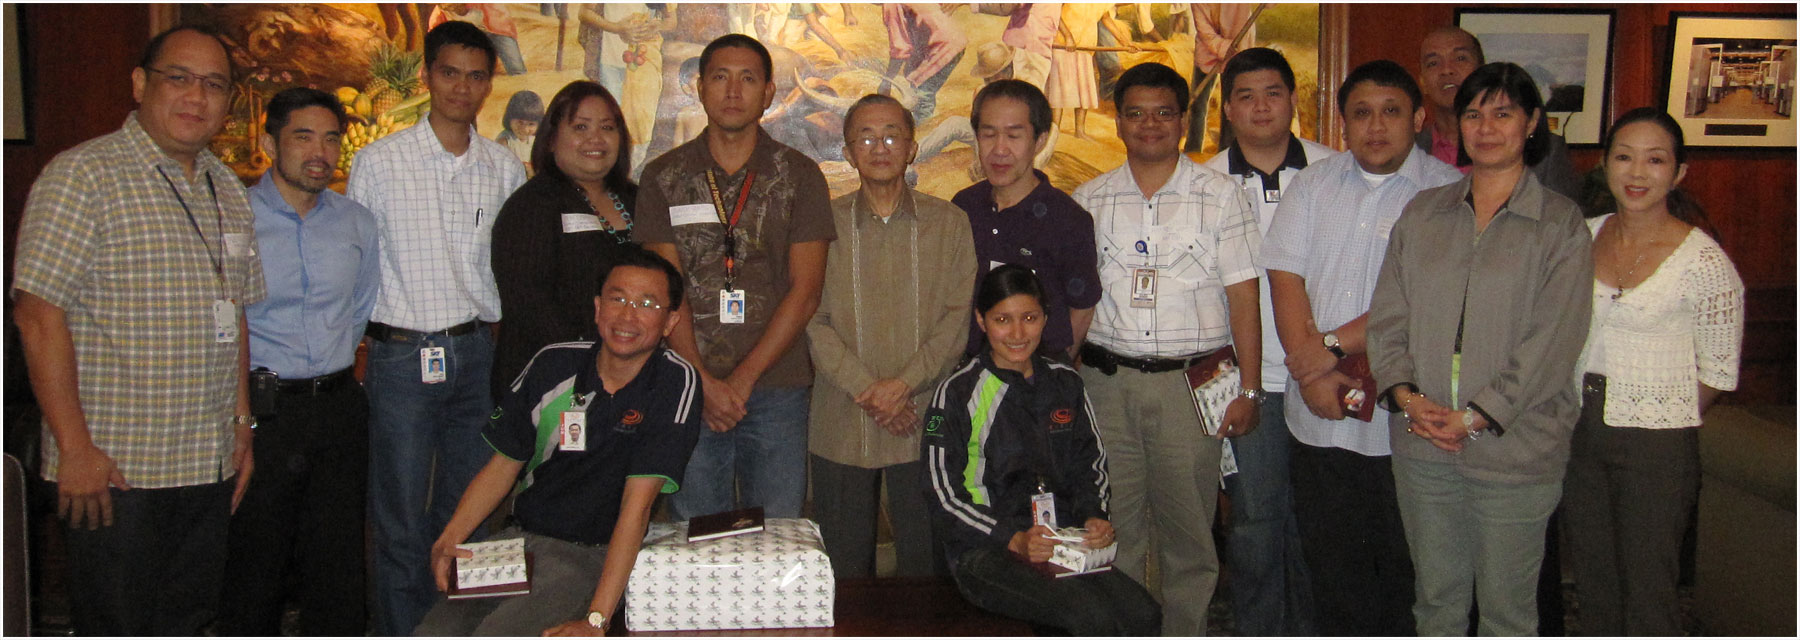 (Standing, l-r) Paul Abastillas (SKYCable HR); Jay Lopez; Lito Mapolon (Operations); Jenie Chan (ABS-CBN Foundation Inc.), Eduard Santos (SKYCable); chairman emeritus Oscar M. Lopez; Caesar de los Reyes (SKYCable); Kimrey Gomez (ABS-CBN, Regional Office Headquarters); a representative from EDC; Christopher Santos (ABS-CBN), Jonas Uy (EDC); Dine Luaurena (ABS-CBN) and Cedie Vargas (HR Council). Seated, EDC representatives. Not in photo are Gonzalo Roque Jr. (SCM Sector); Pedro Abellano (SFO sector); Edgardo Tadlas (NNGP); and Edgardo Cadungog (SFO Sector), all of EDC